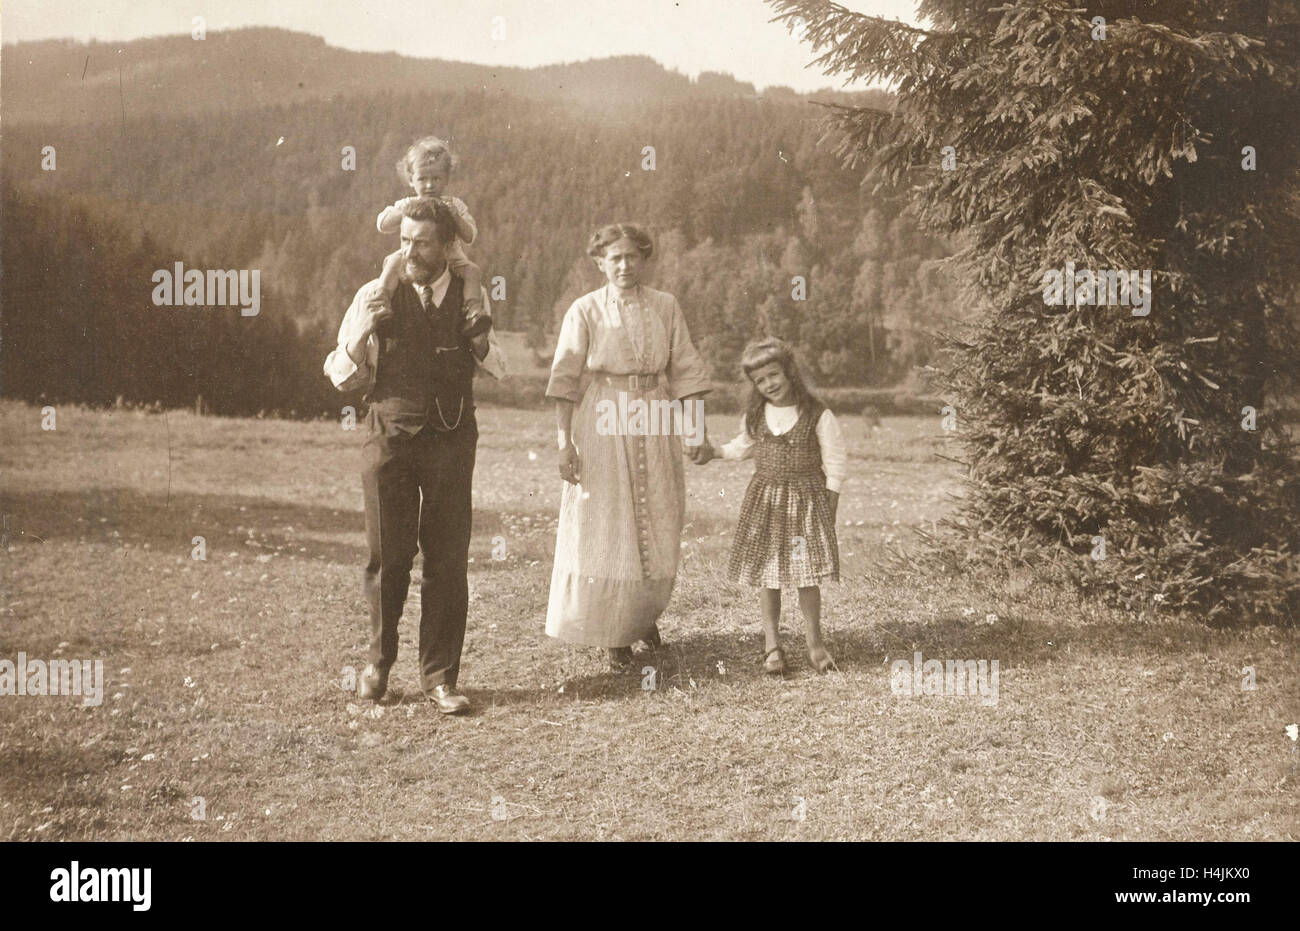 Waldemar Titzenthaler, the photographer, with his wife Olga and children Marba and Eckart in a clearing, Waldemar - Stock Image